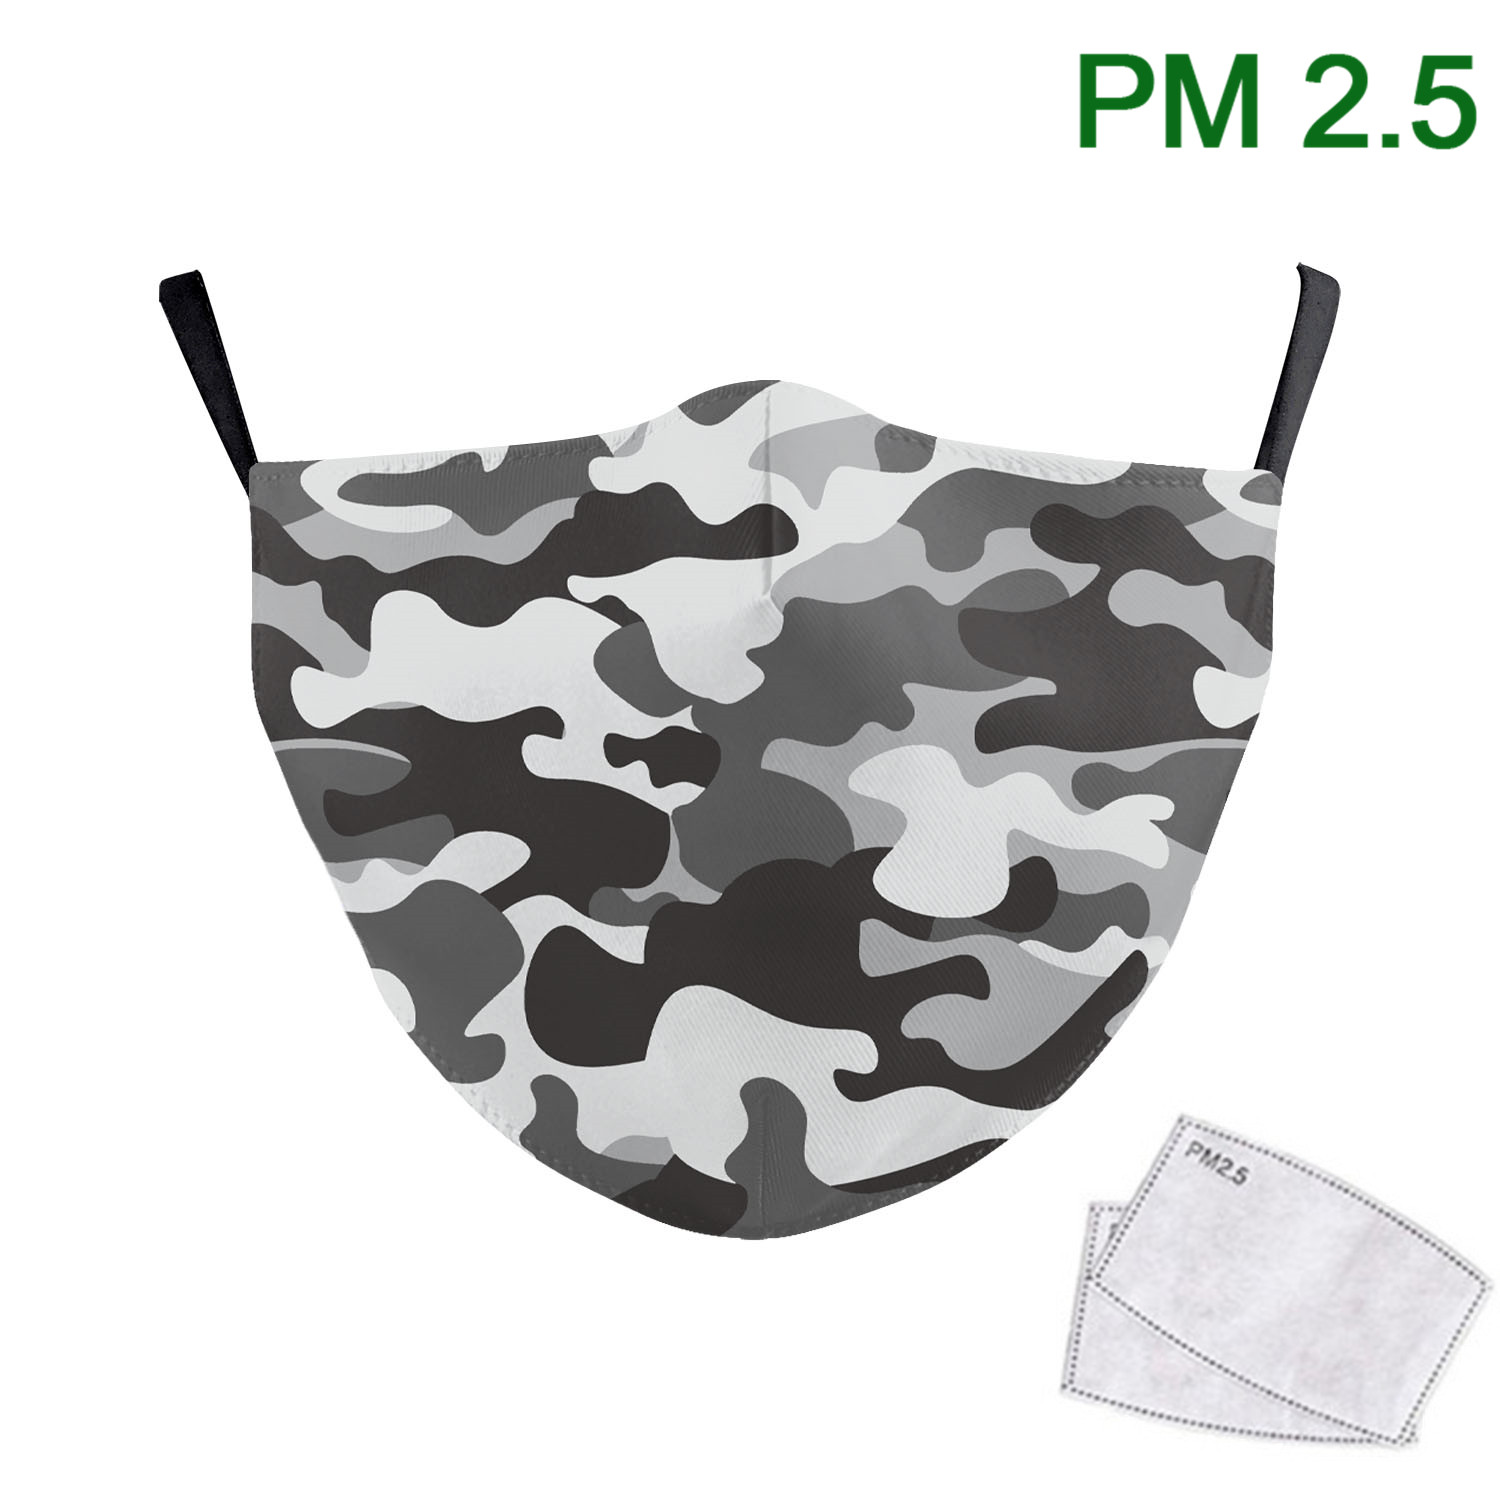 Colorful Classic Camouflage Face Mask Adult Print Fabric Reusable Mask Washable PM 2.5 Protective Filter Air Purity Mouth Muffle